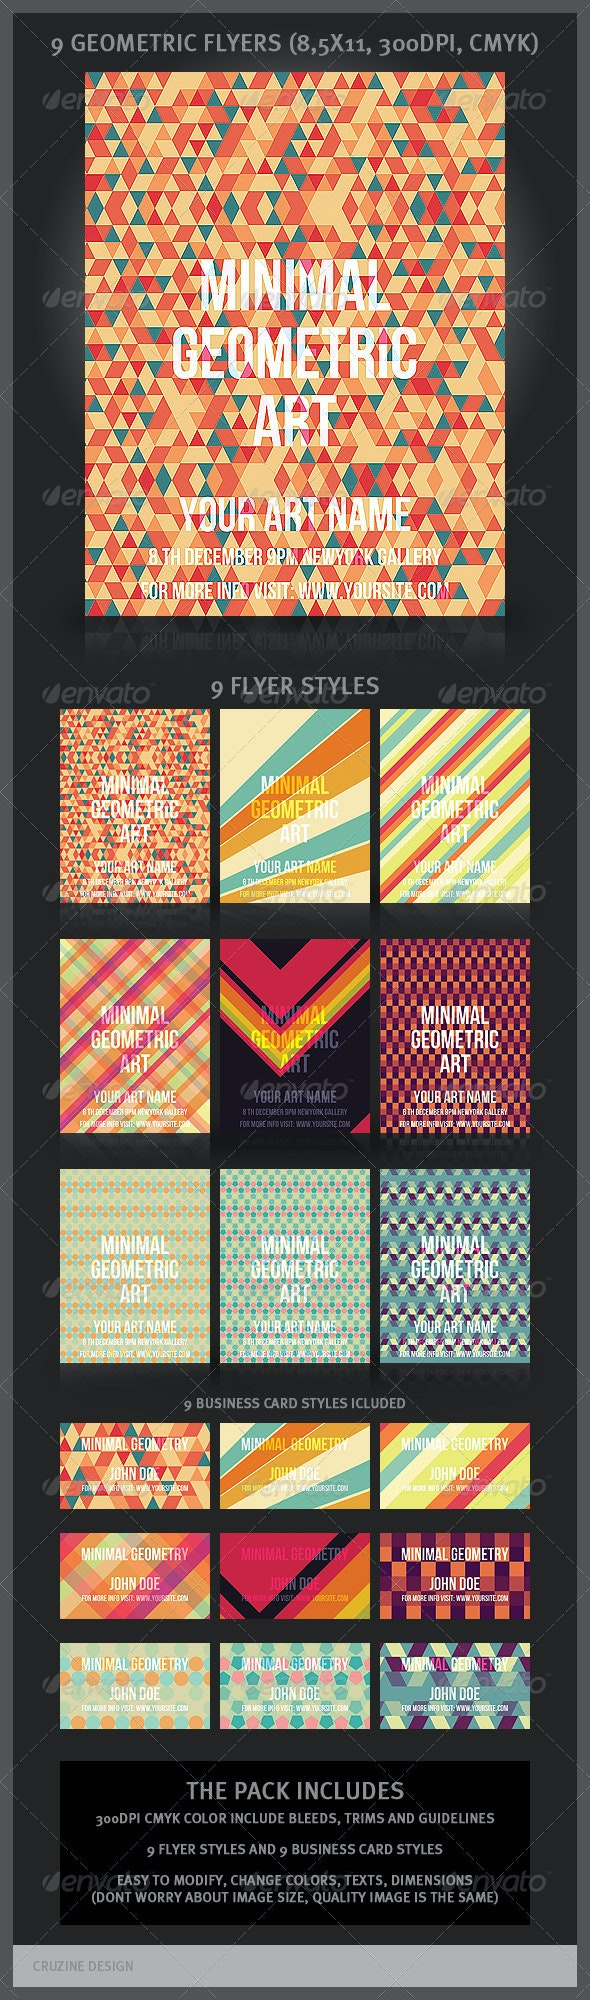 9 Geometric Flyers and Business Cards